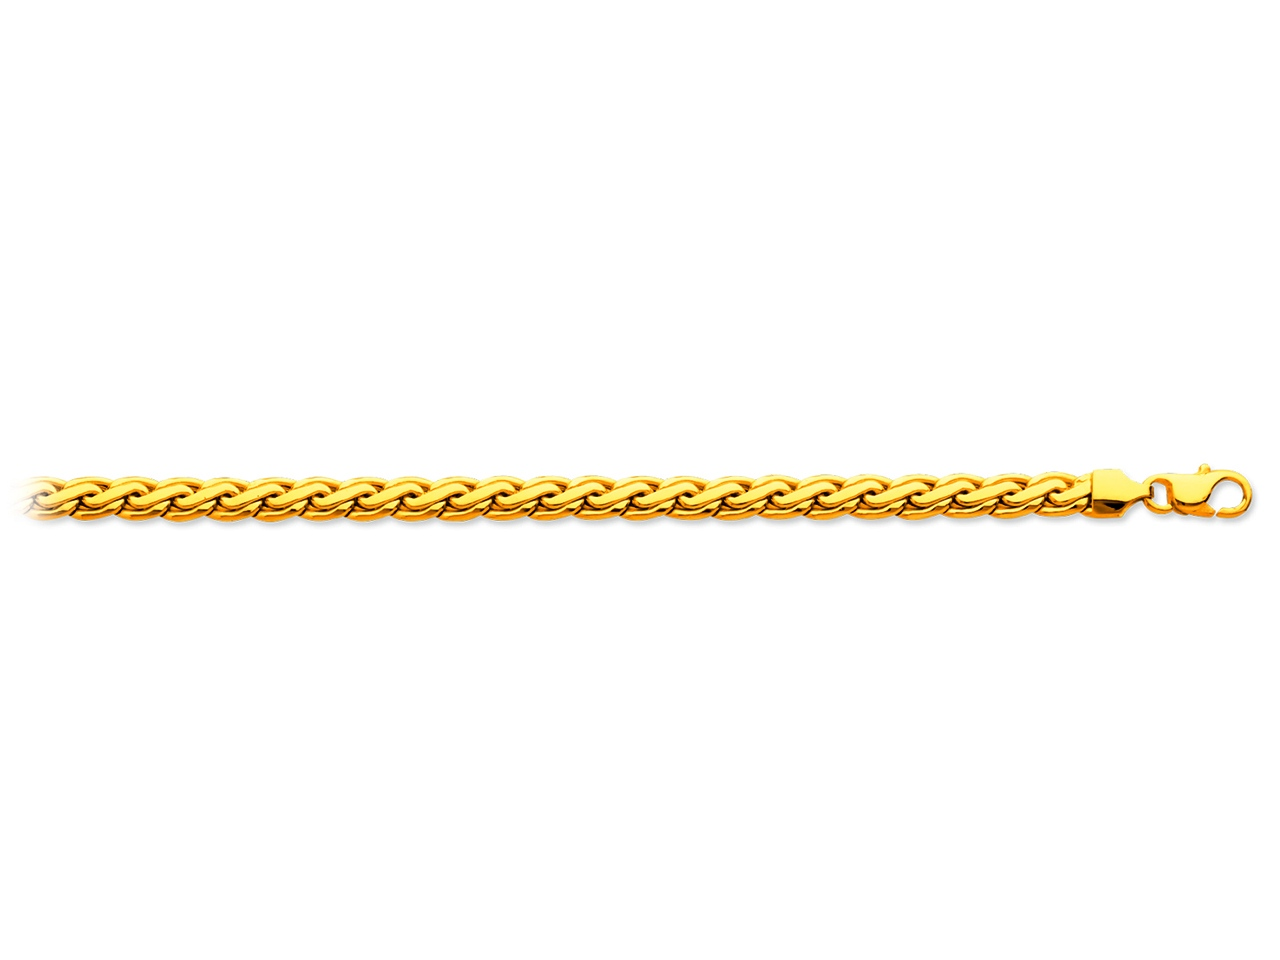 Collier maille palmier plat, Or jaune 18k, 5,5 mm, 45 cm